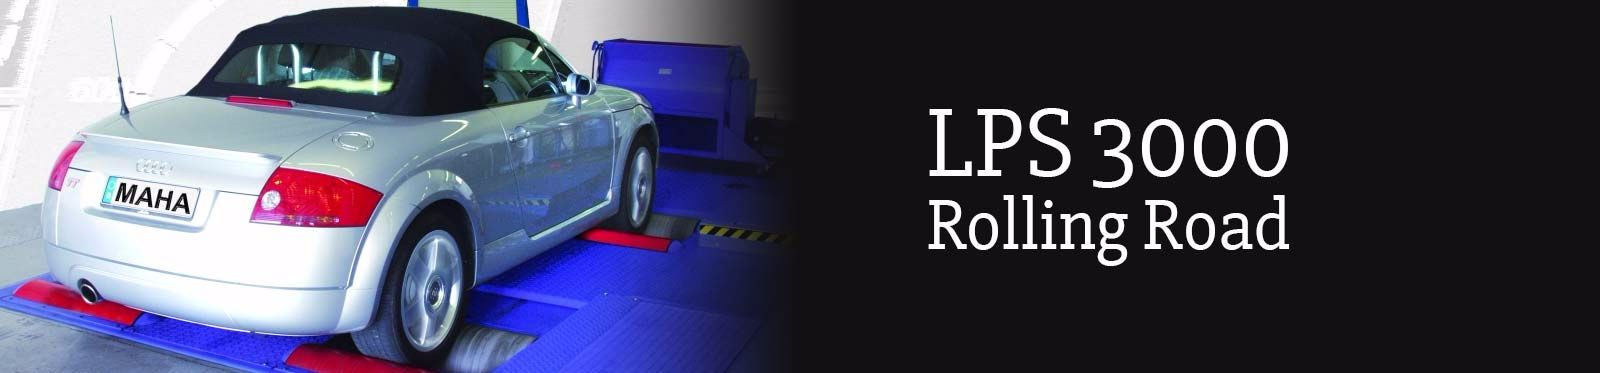 LPS 3000 Rolling Road at CC Motors